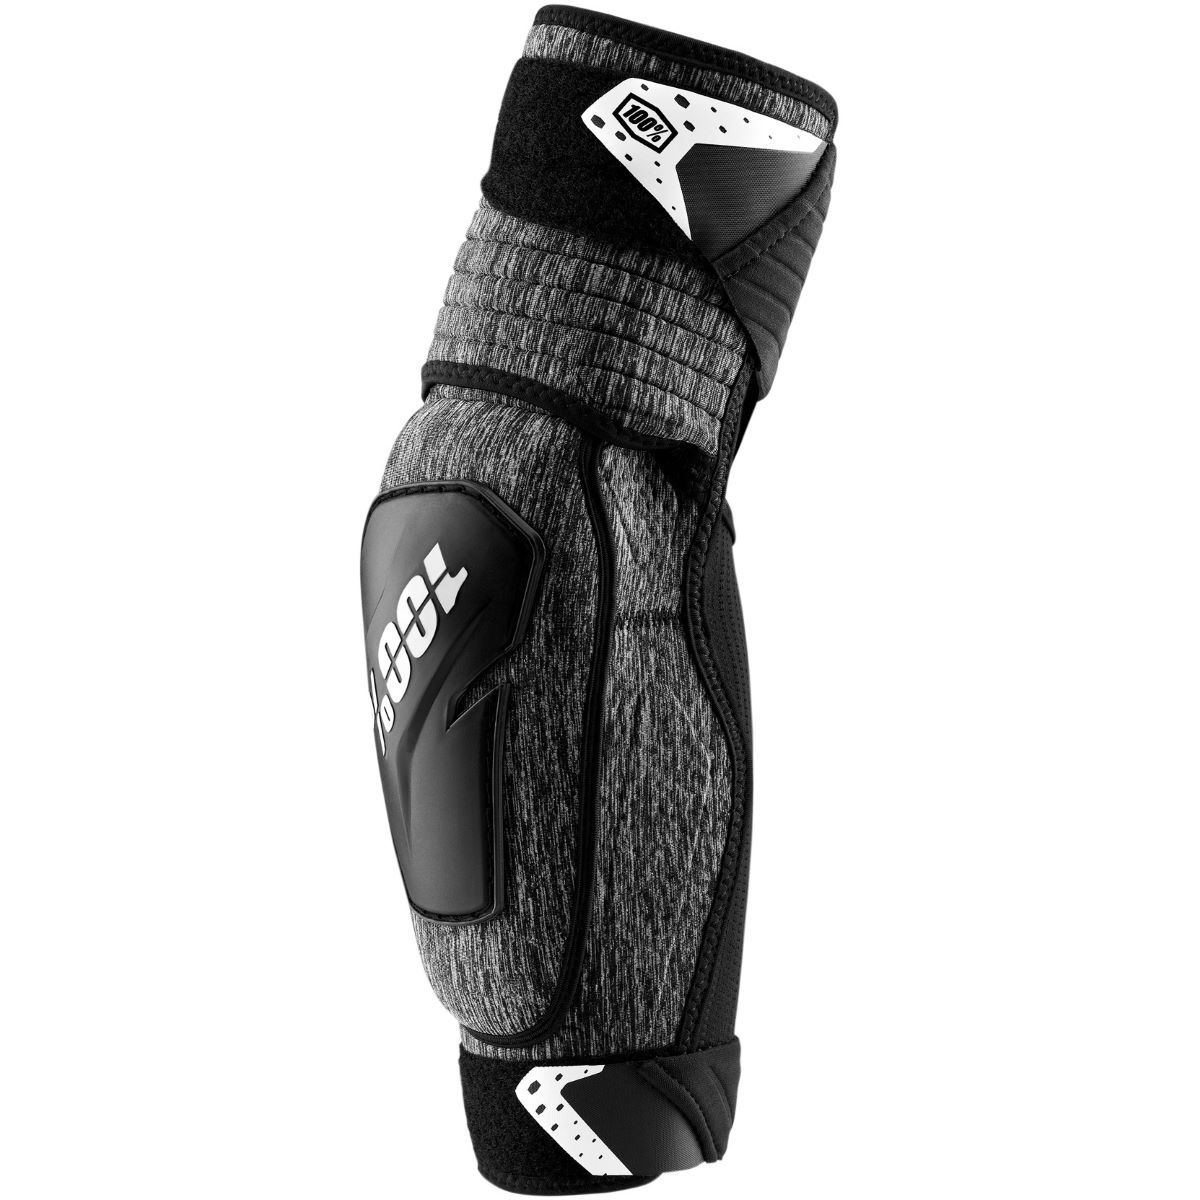 100% Fortis Elbow Guard - S/m Charcoal Heather  Elbow Pads